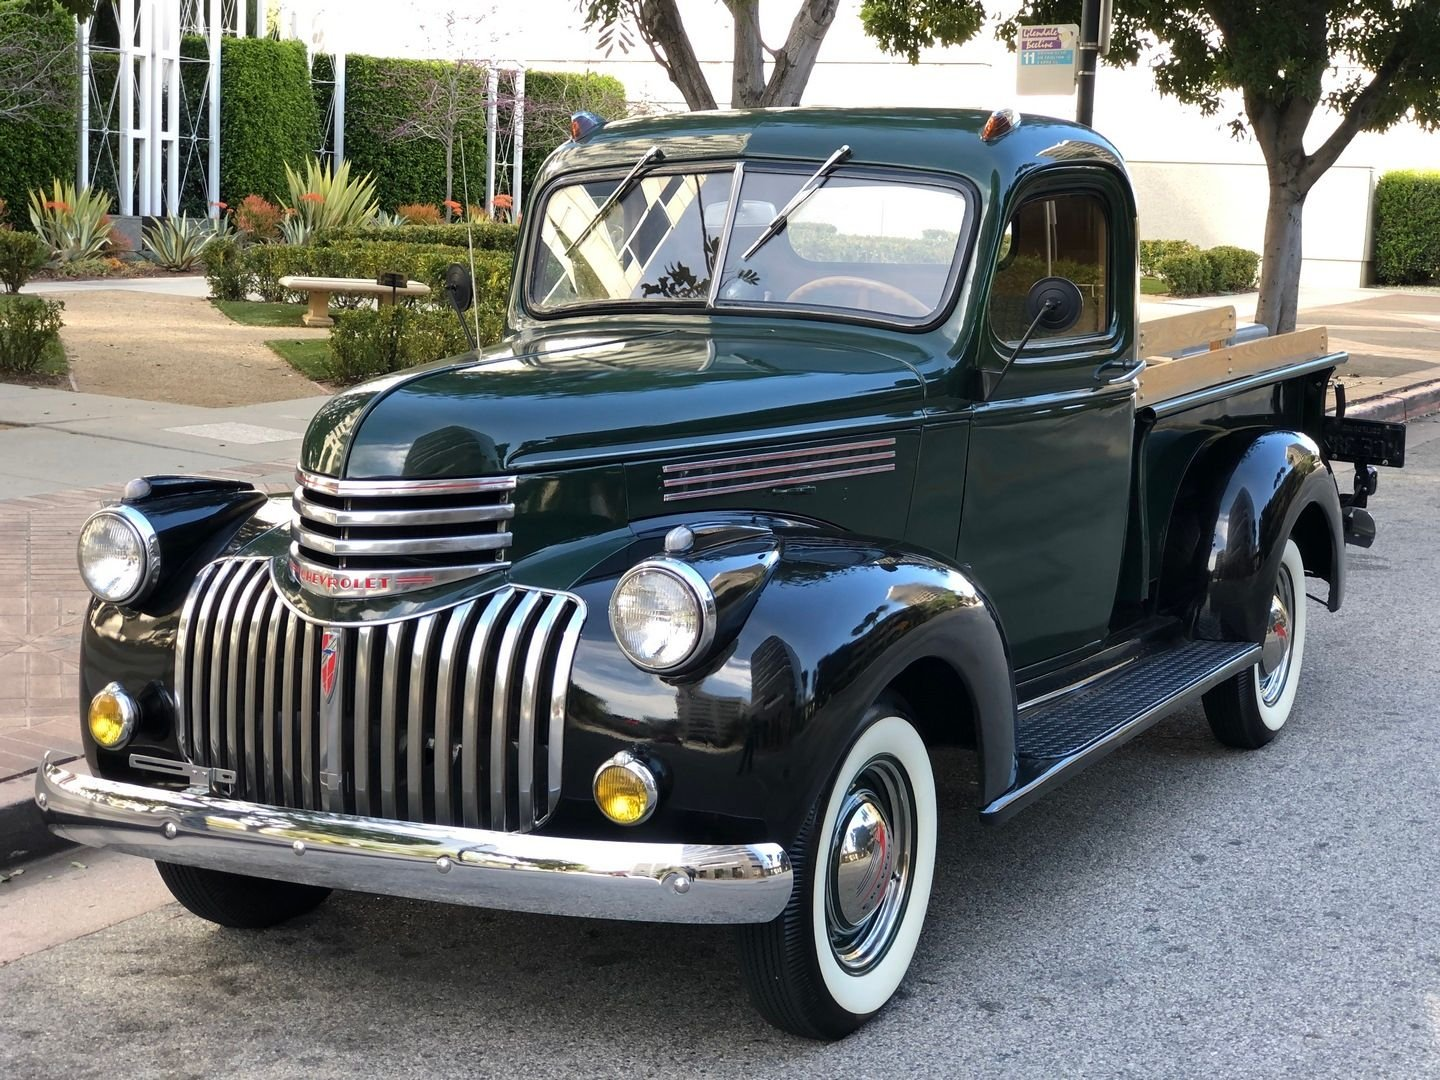 1946 Chevrolet AK Series